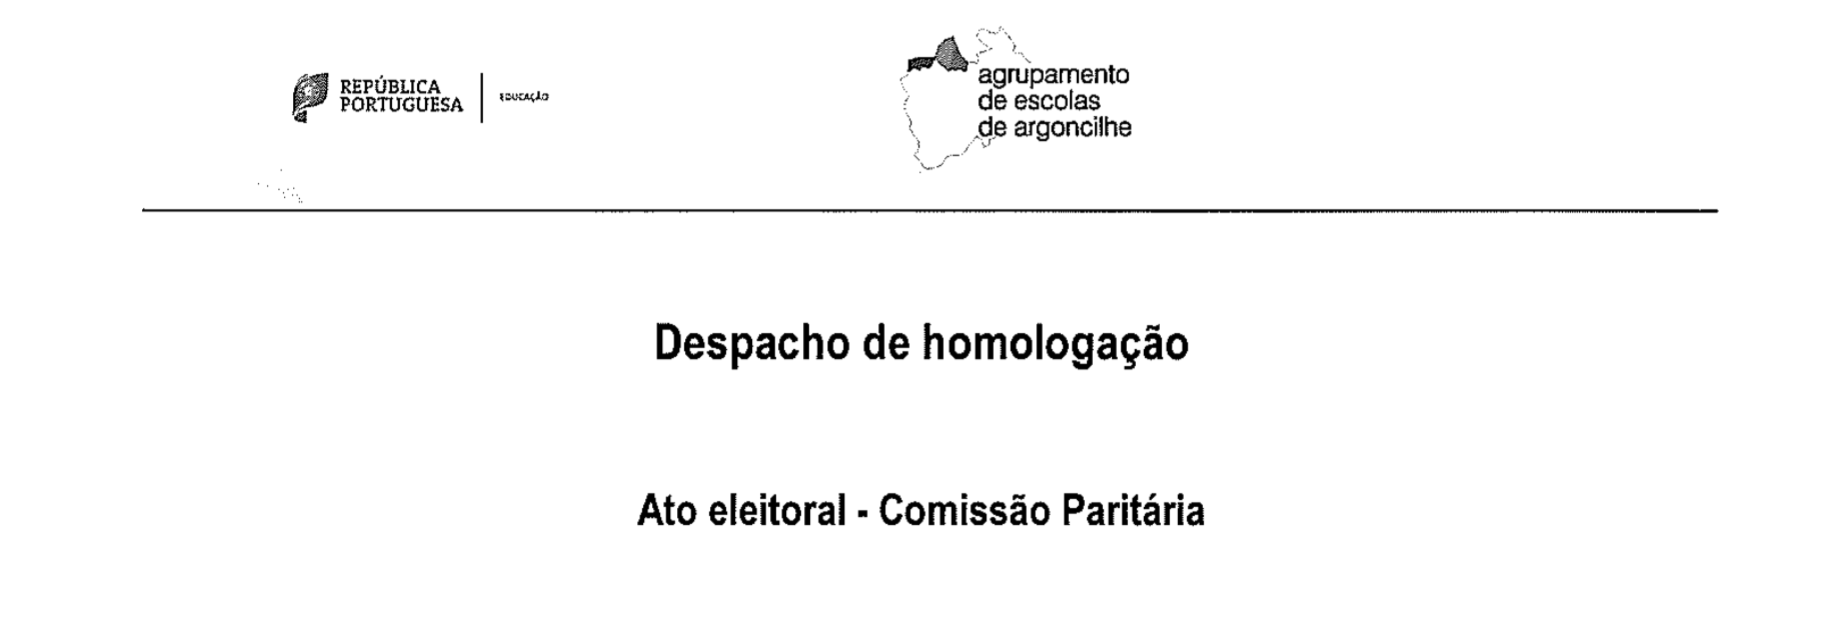 Download Despacho de homologação